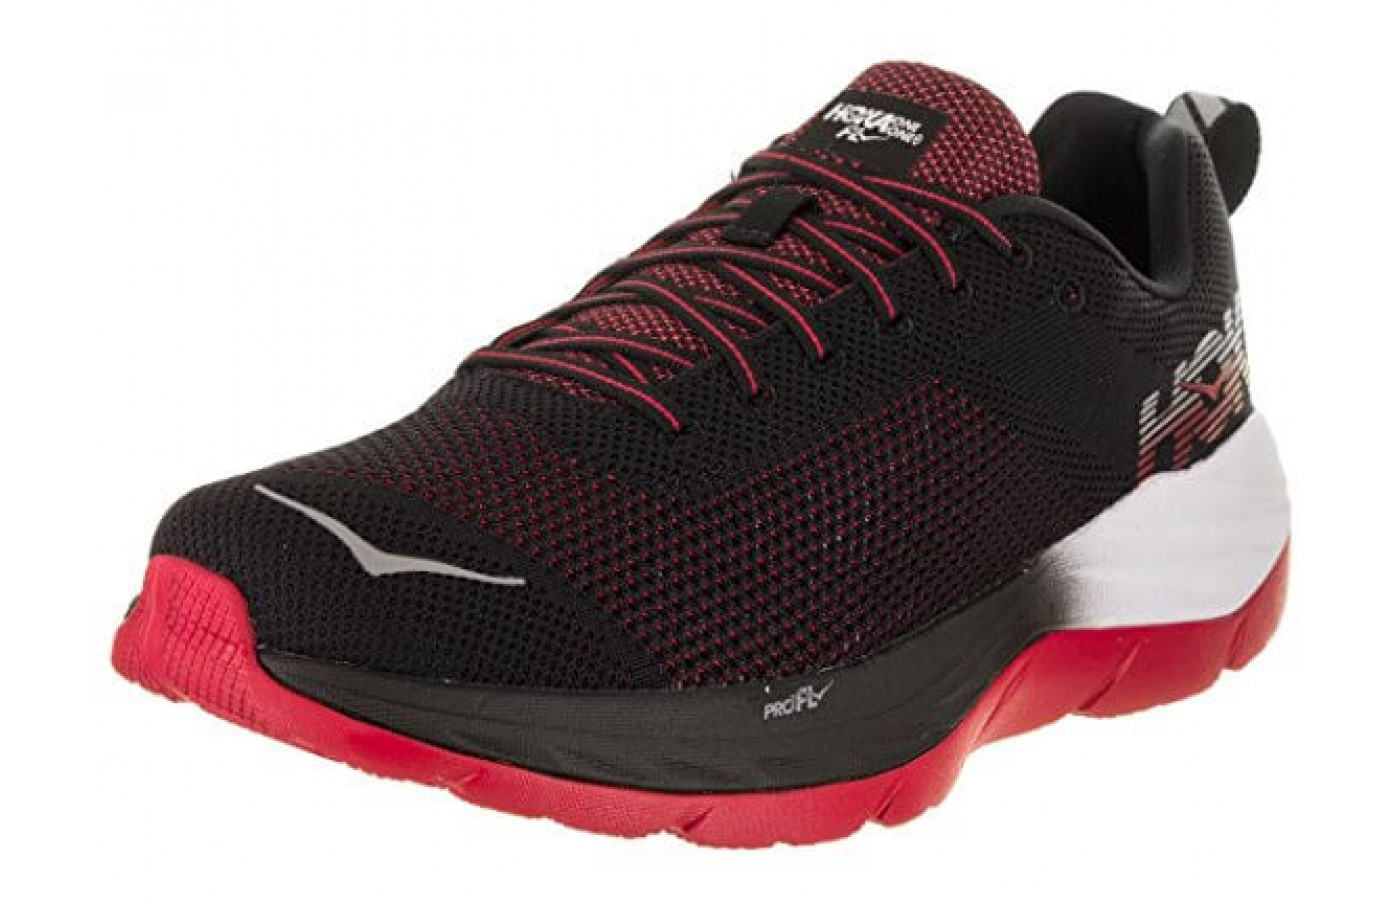 The Hoka One One Mach is extremely lightweight